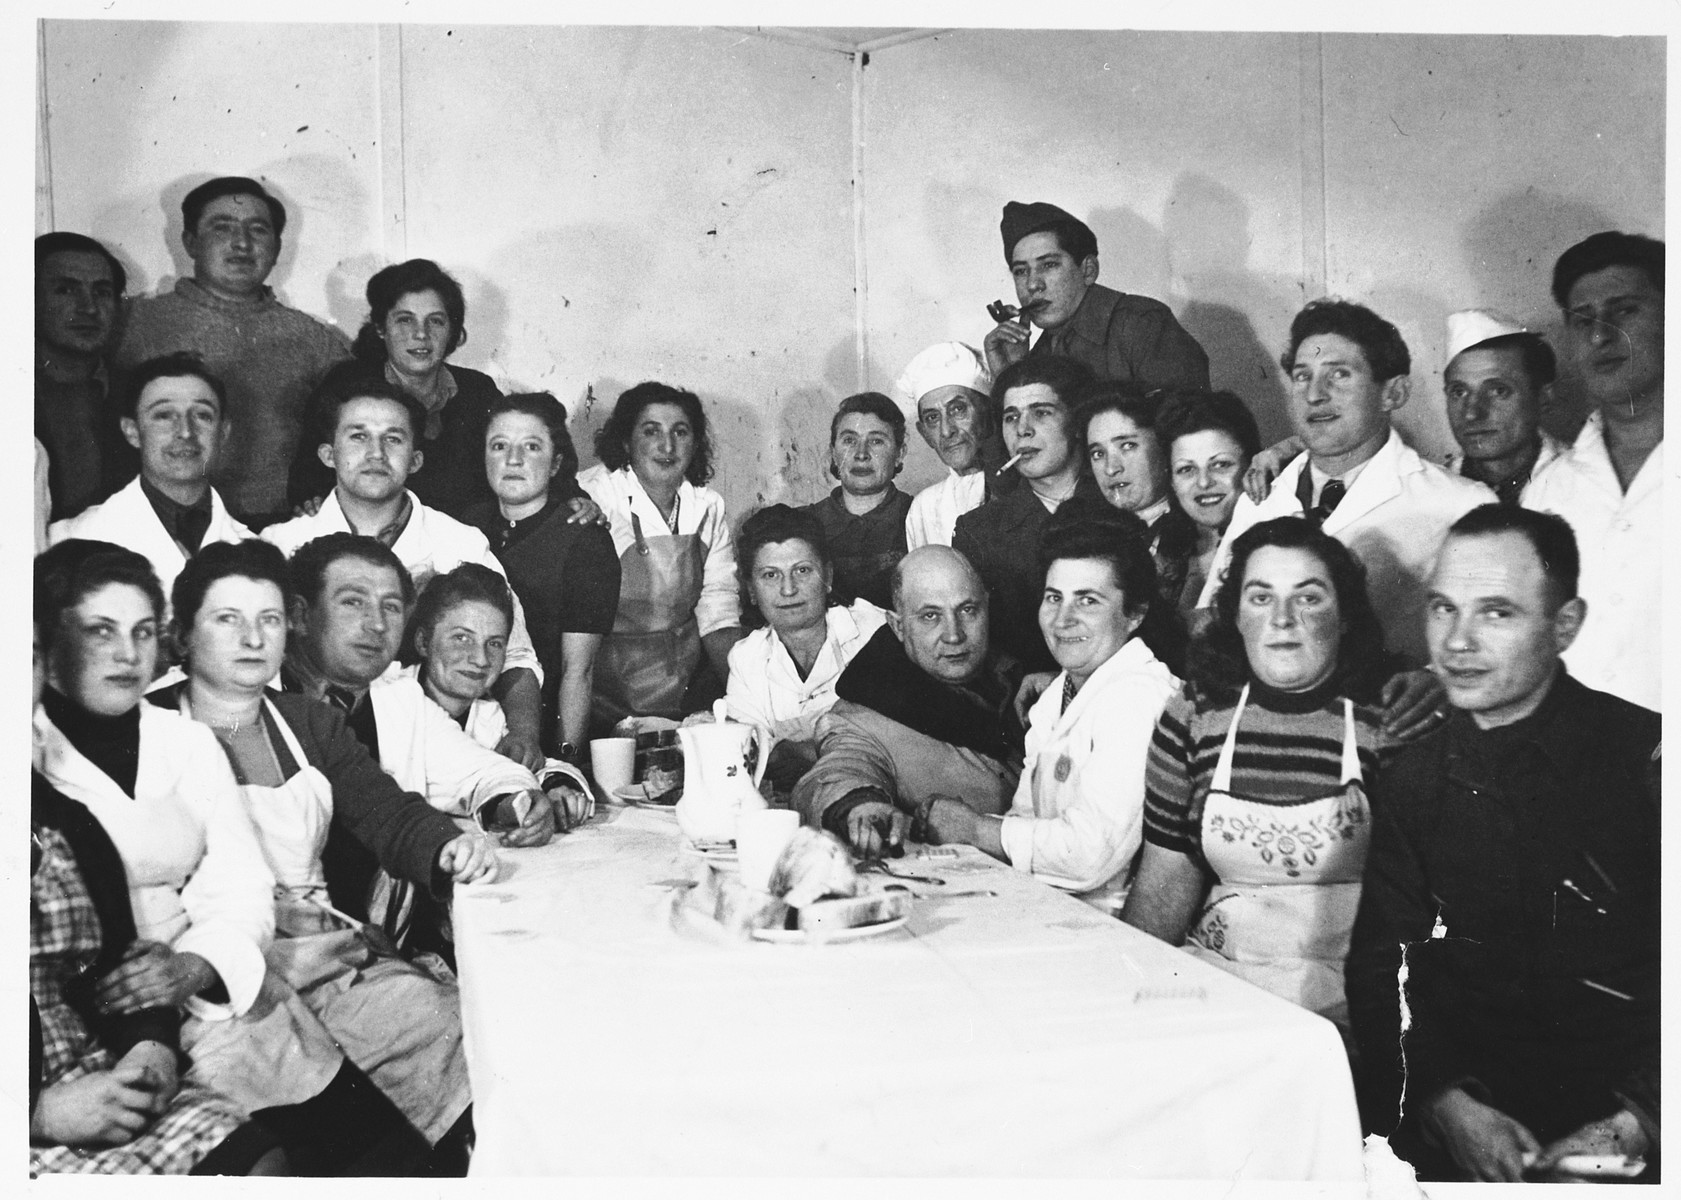 Group portrait of Jewish DPs gathered around a table in the Schlachtensee displaced persons camp.